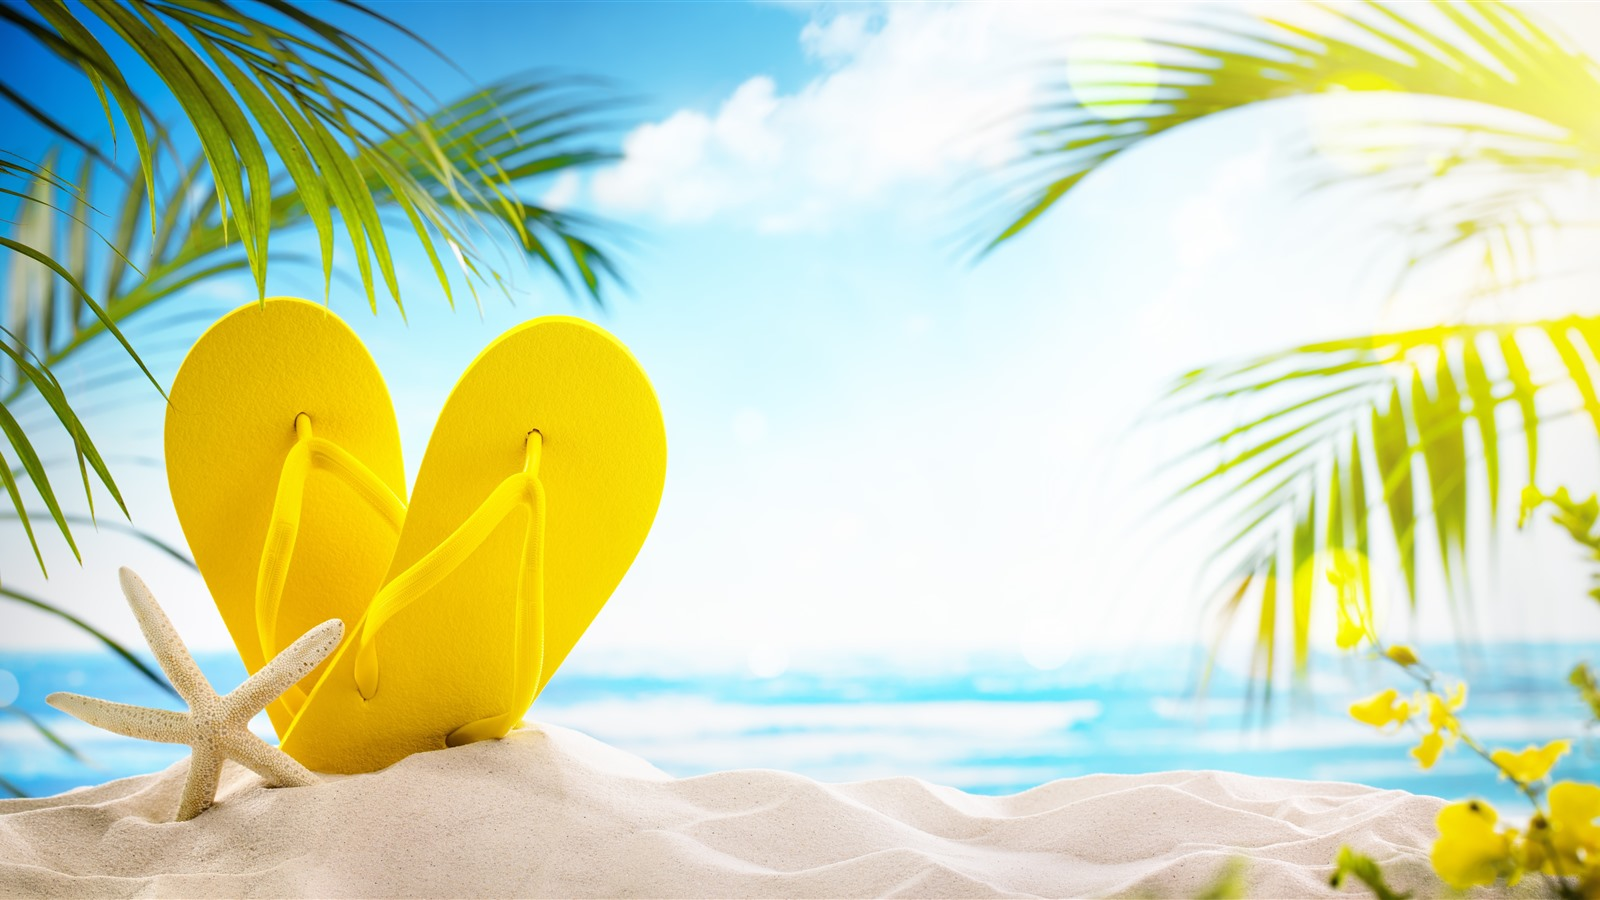 Wallpaper Beach Sands Yellow Slippers Palm Leaves Glare